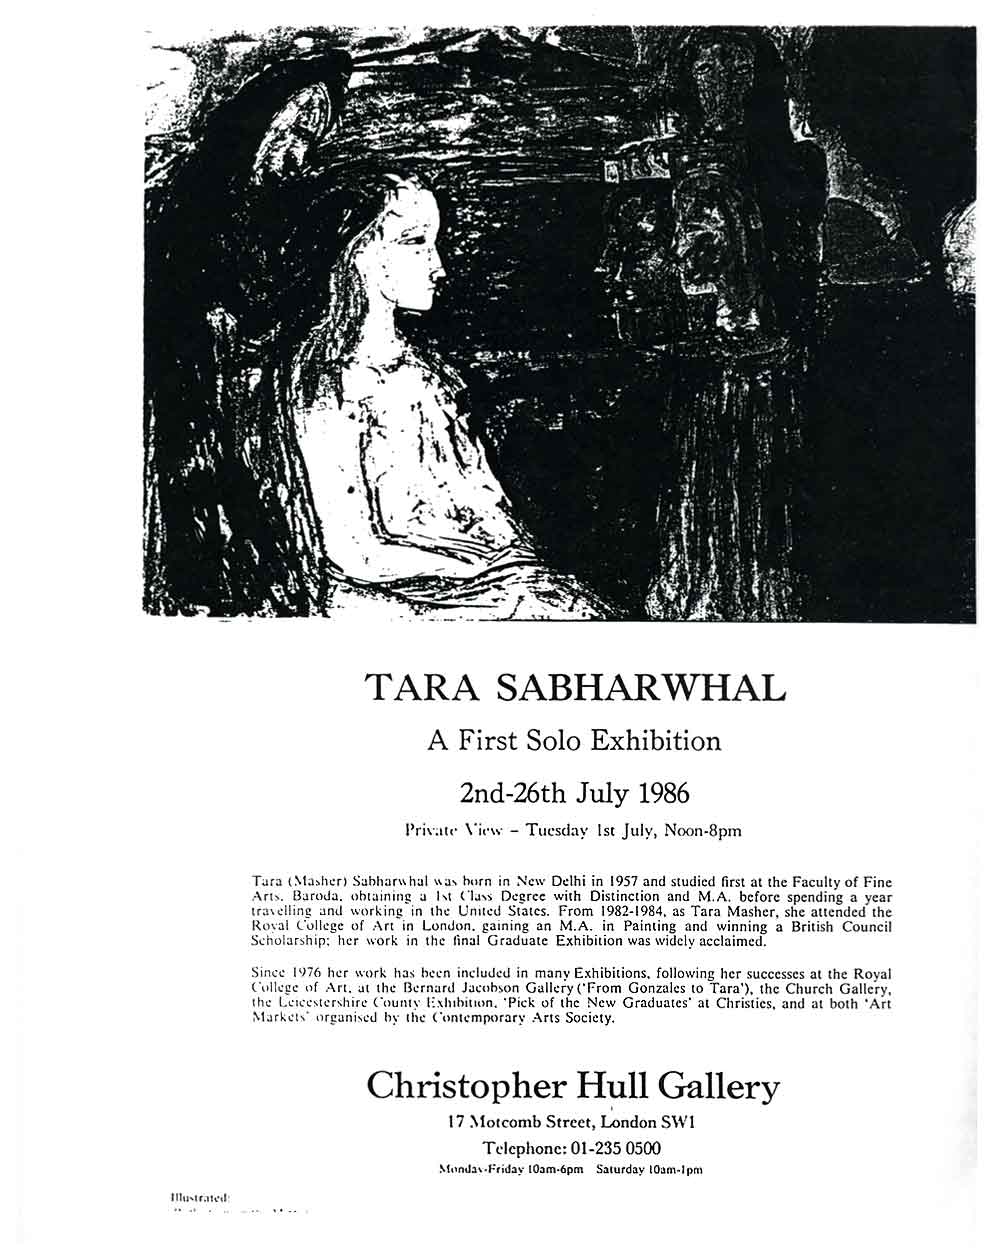 Tara Sabharwhal at Christopher Hull Gallery, pg 2